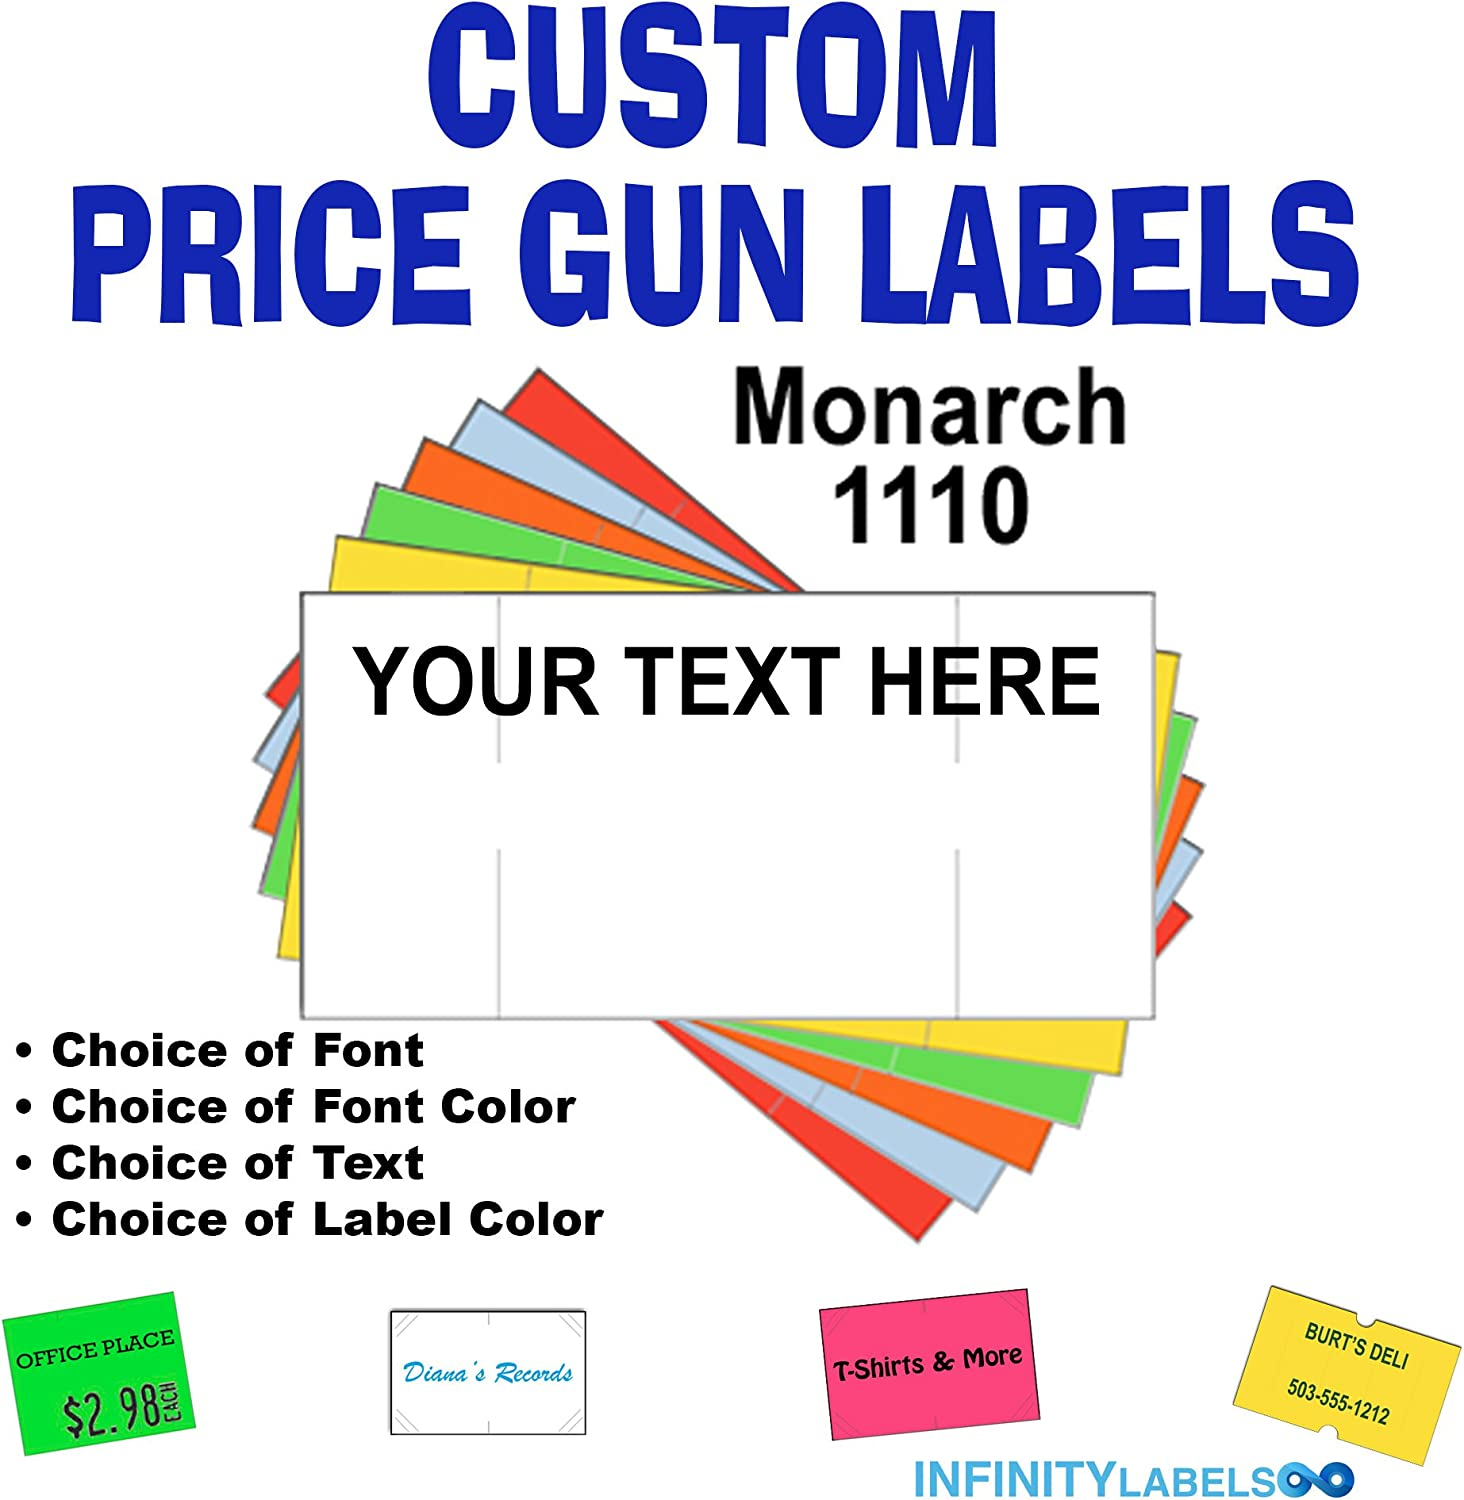 Monarch 1110 pink labels for one line label price gun 2 SLEEVES ink included